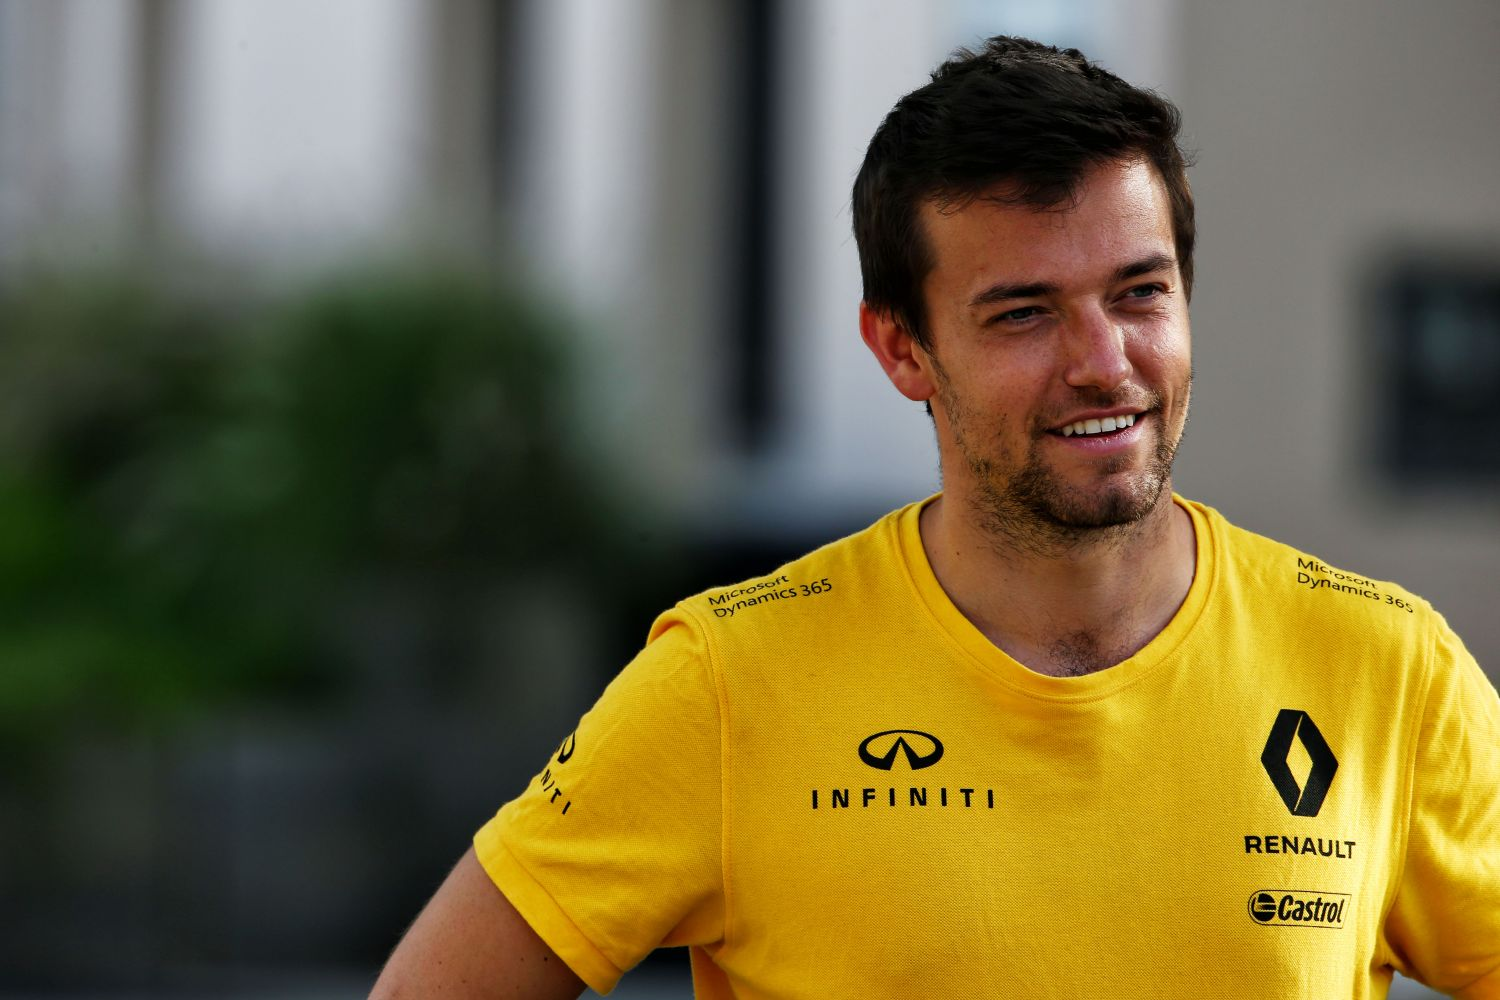 © Renault - Mention honorable pour Jolyon Palmer à l'issue du Grand Prix de Monaco